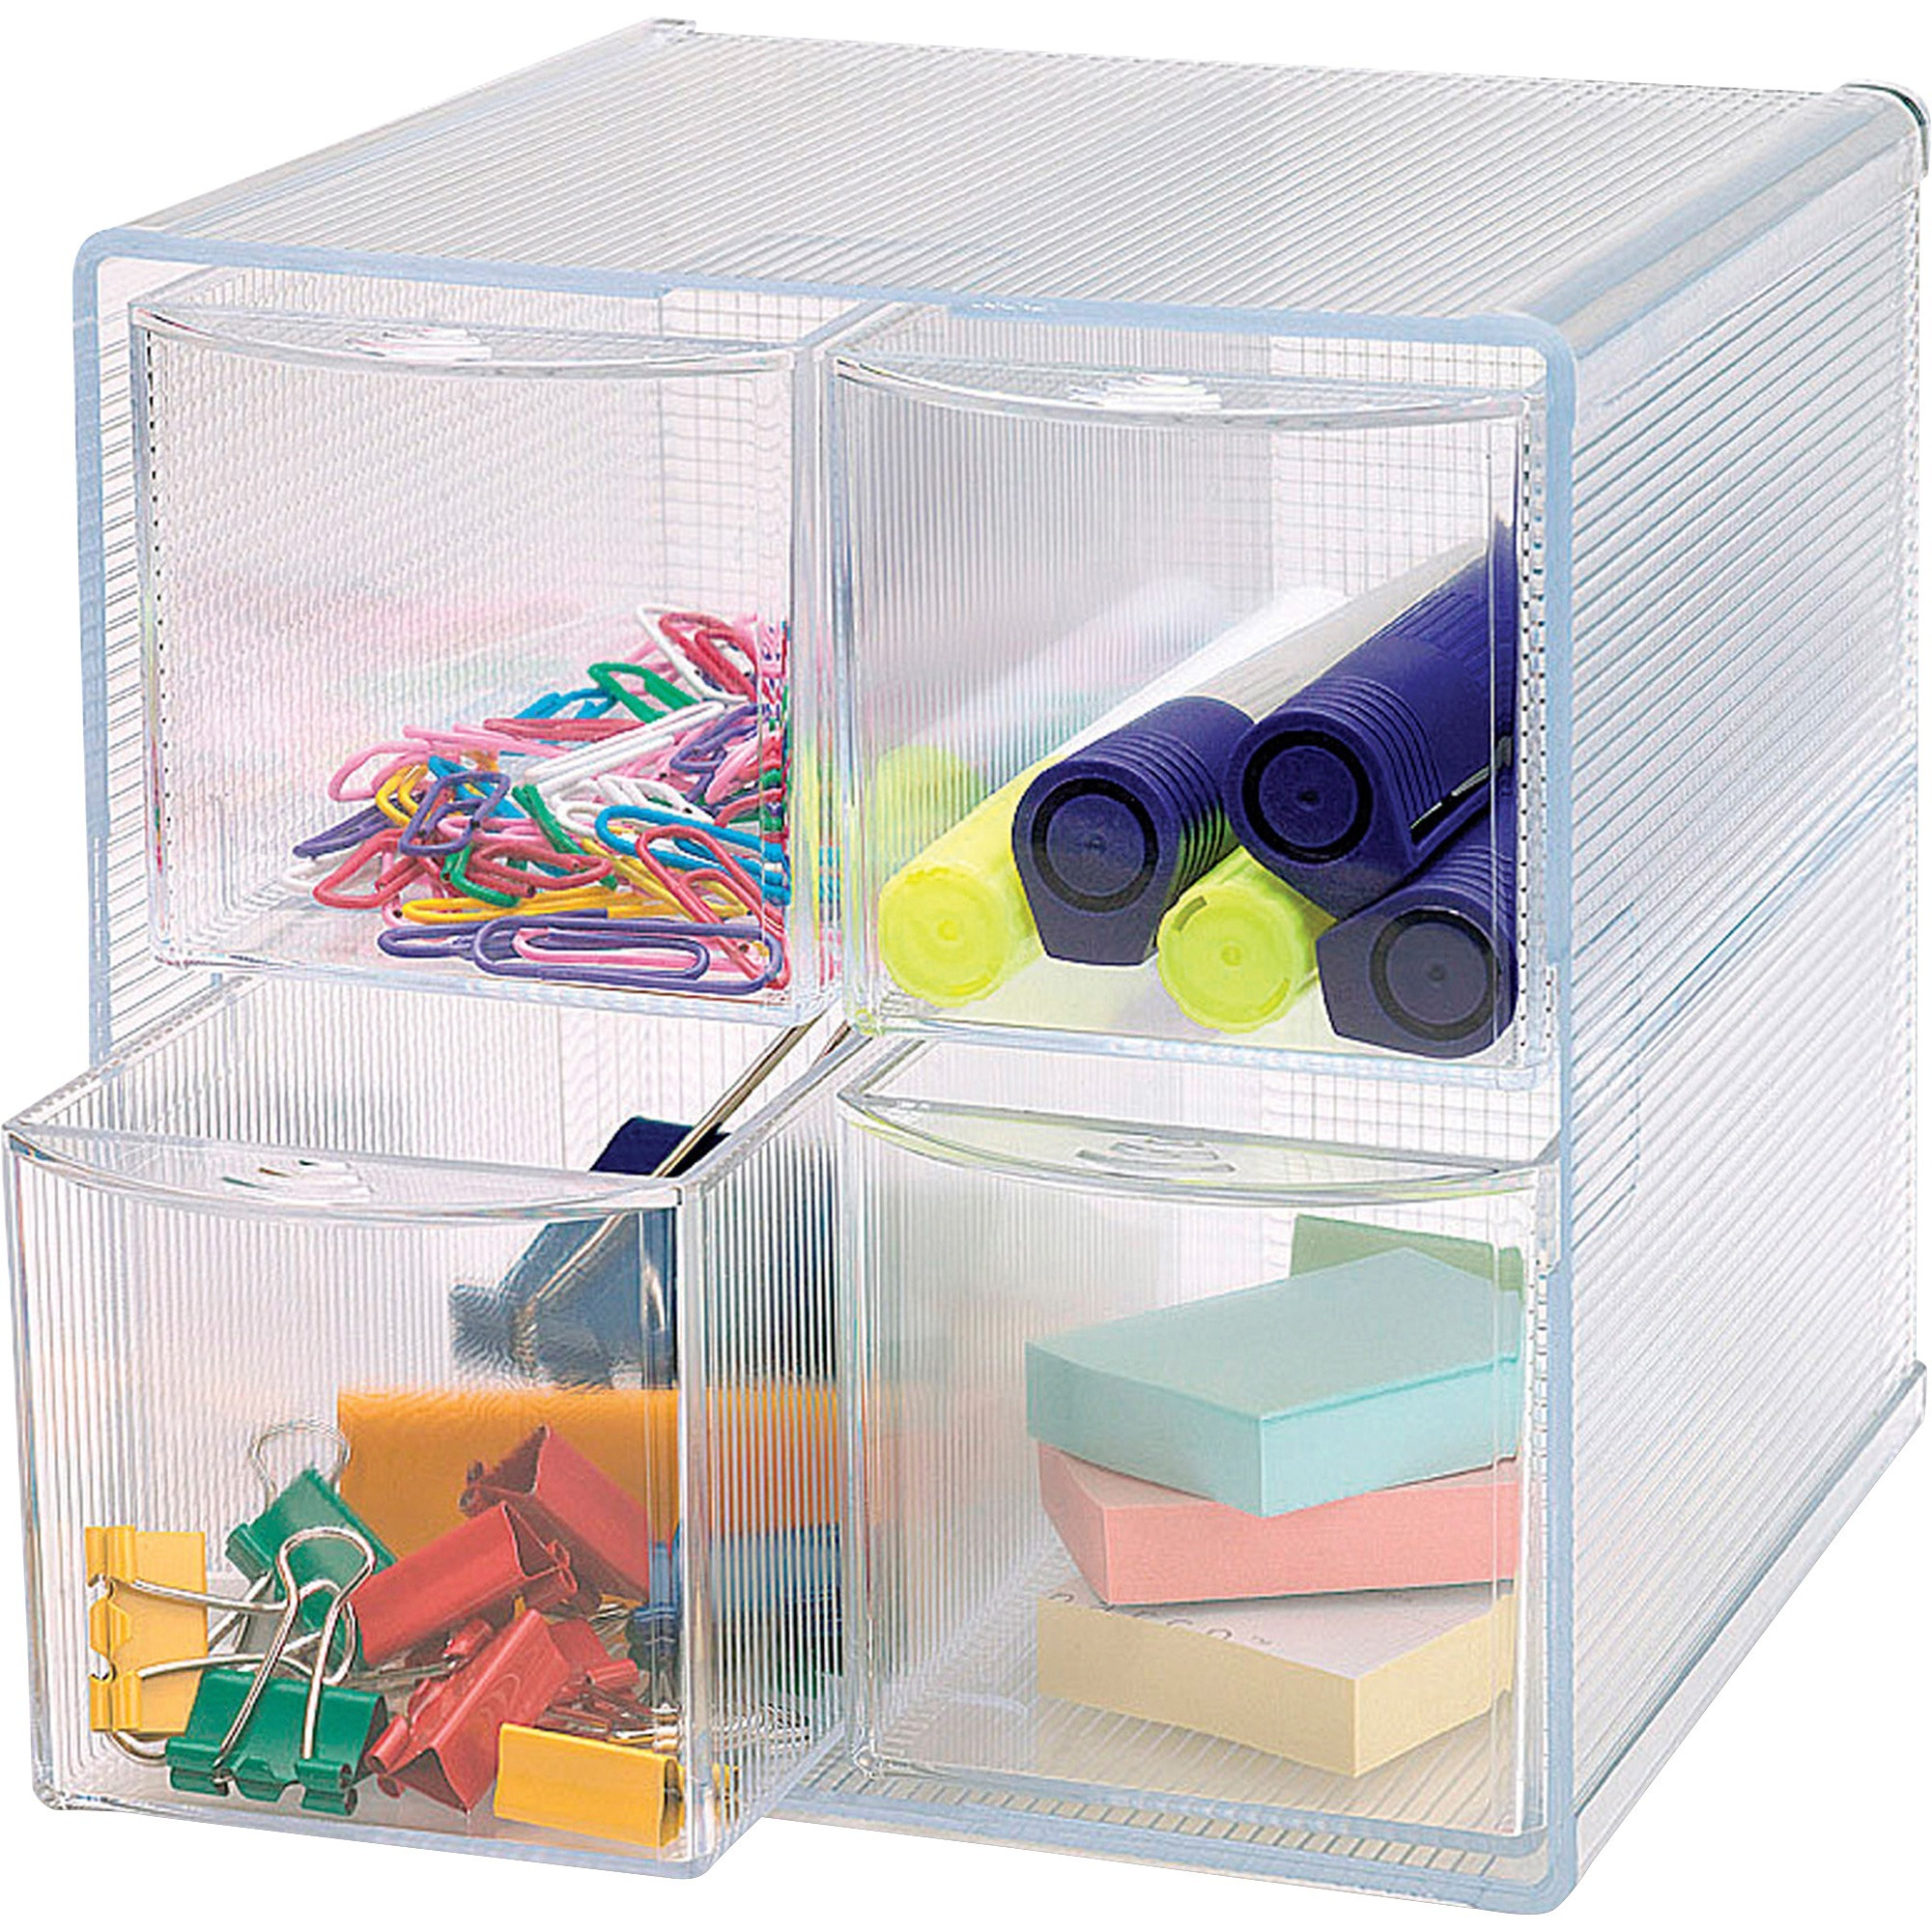 drawer cart cheap to dressers storage organizer plastic genuine trays with how dividers stacking draw dresser need beauteous ever hacks drawers phantasy huffpost together only fd organization craft plus